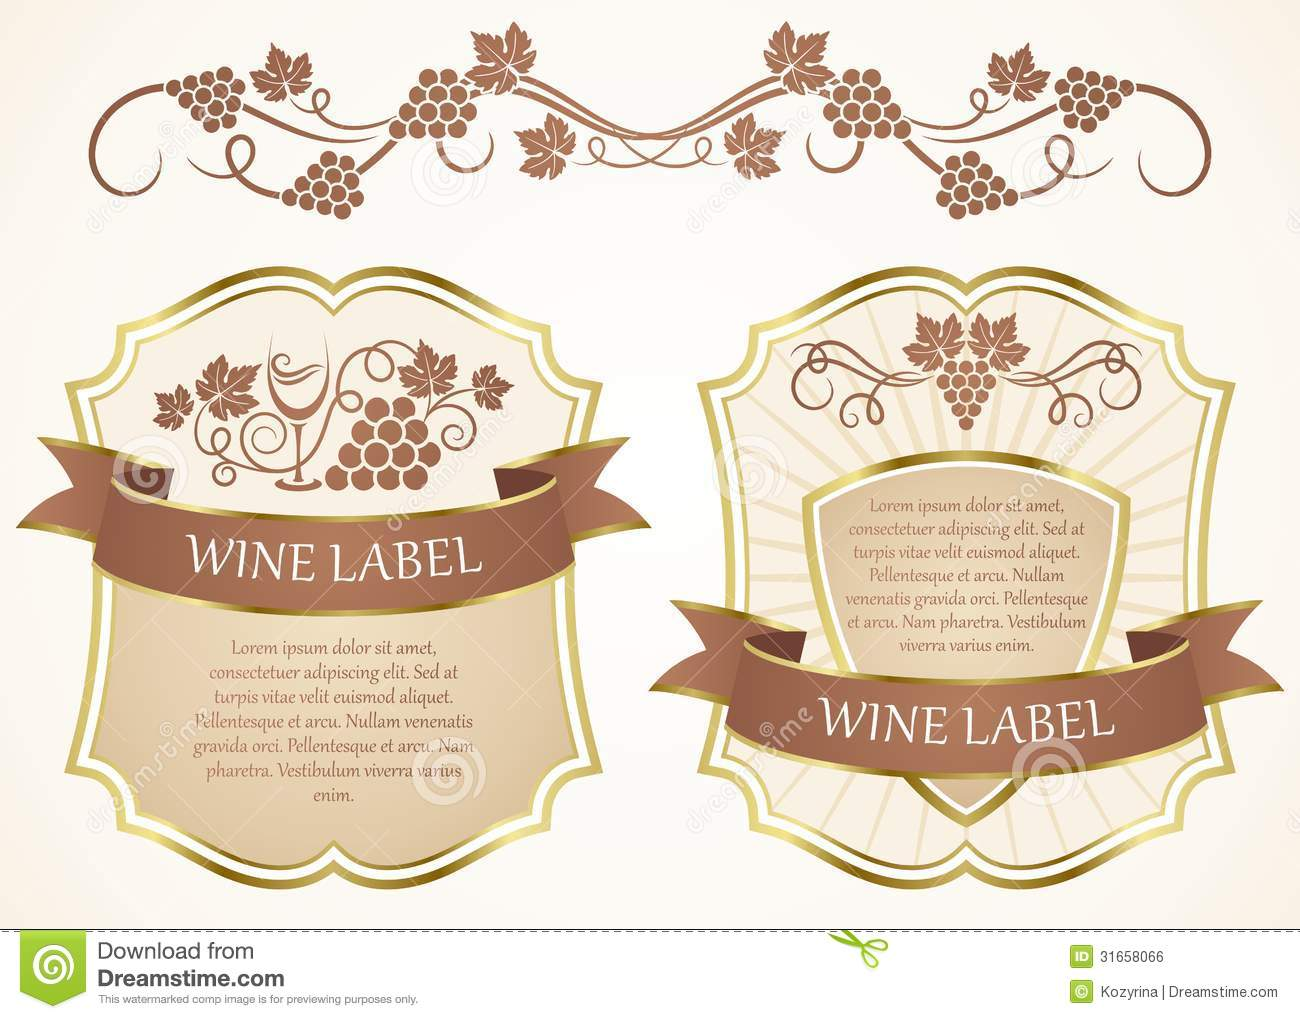 Wine label stock vector. Illustration of alcohol, background - 31658066